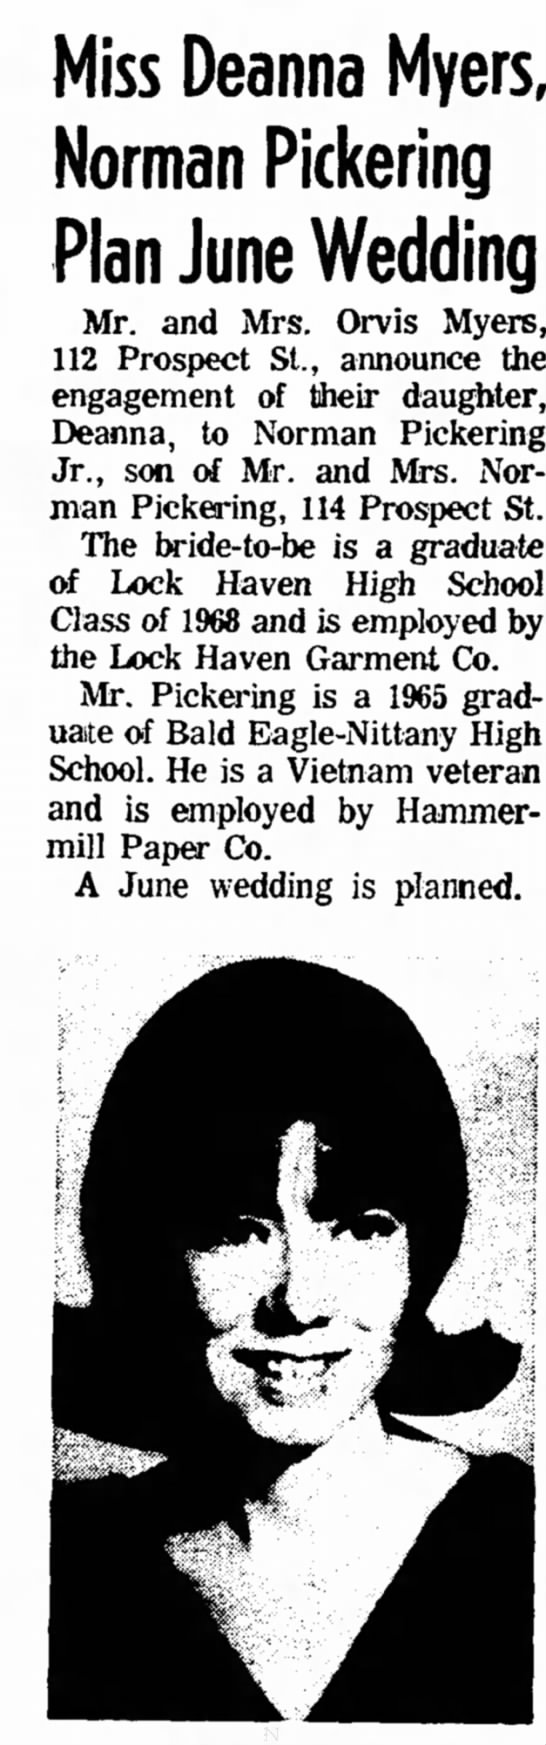 Norm and Deanna's engagement 1968 - Miss Deanna Myers, Norman Pickering Plan June...